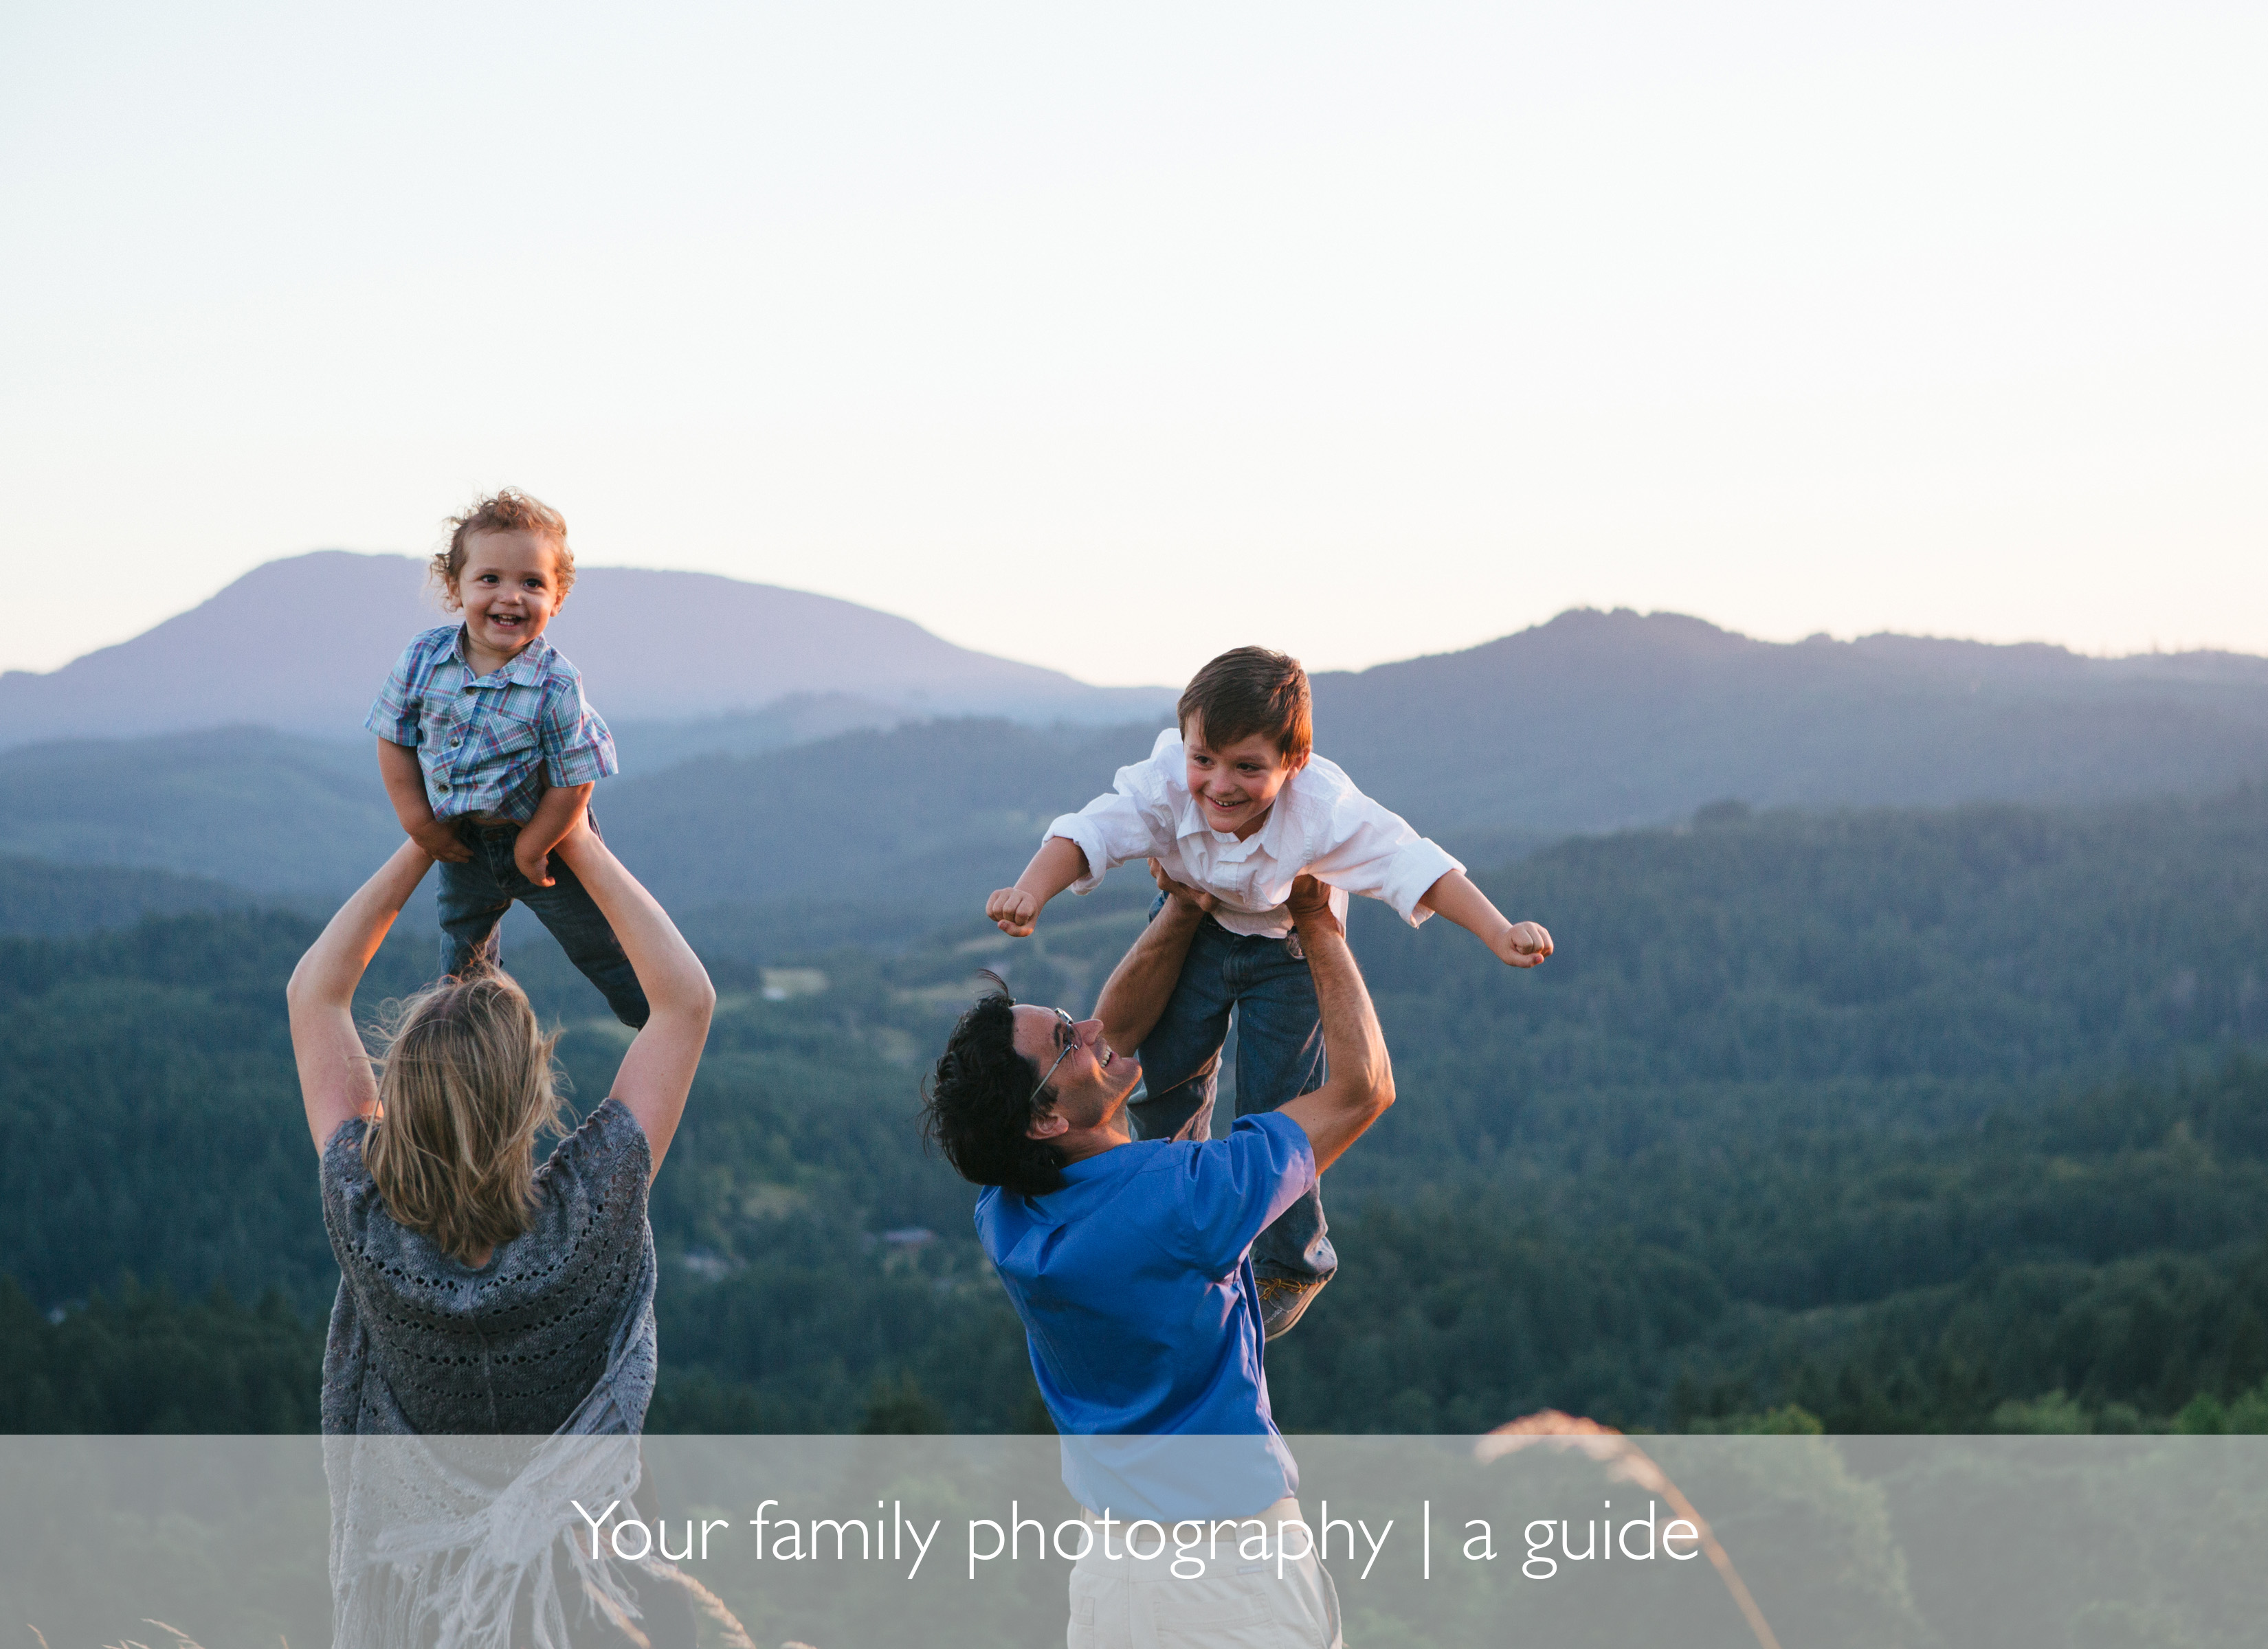 Your family photography guide corvallis family photographer